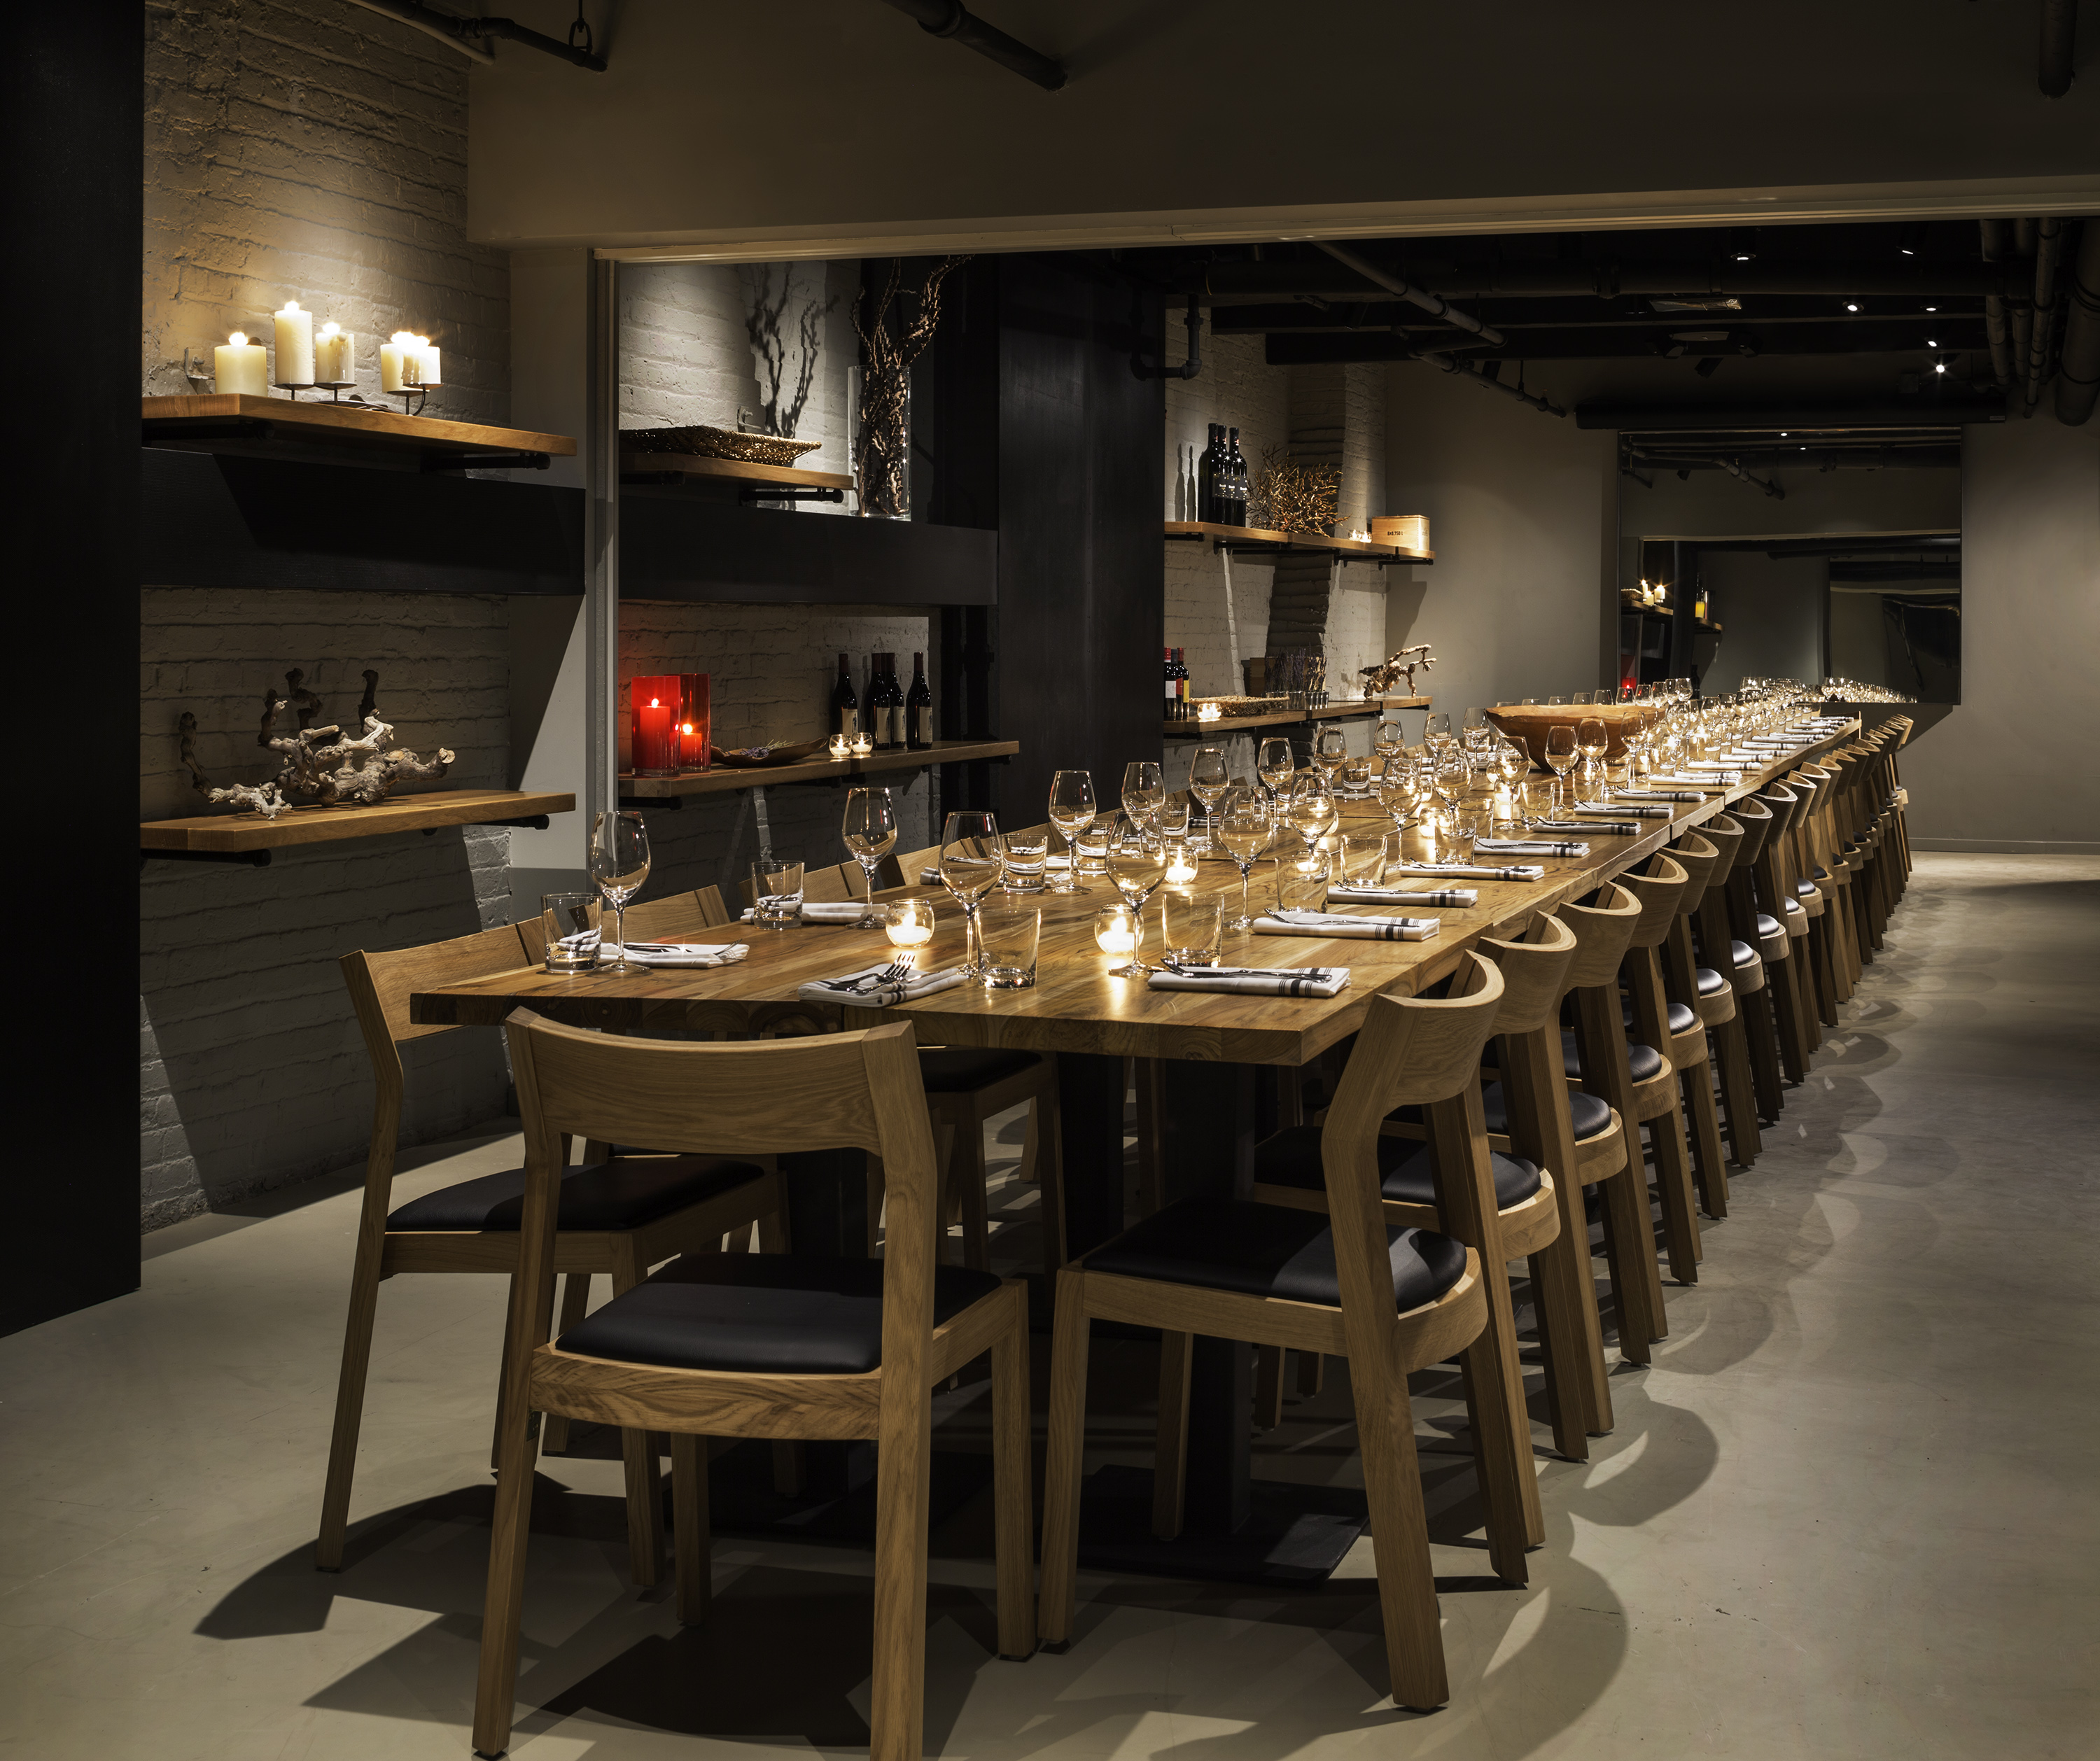 Best Private Dining Rooms In Nyc: Private Dining Venue For Rent In New York